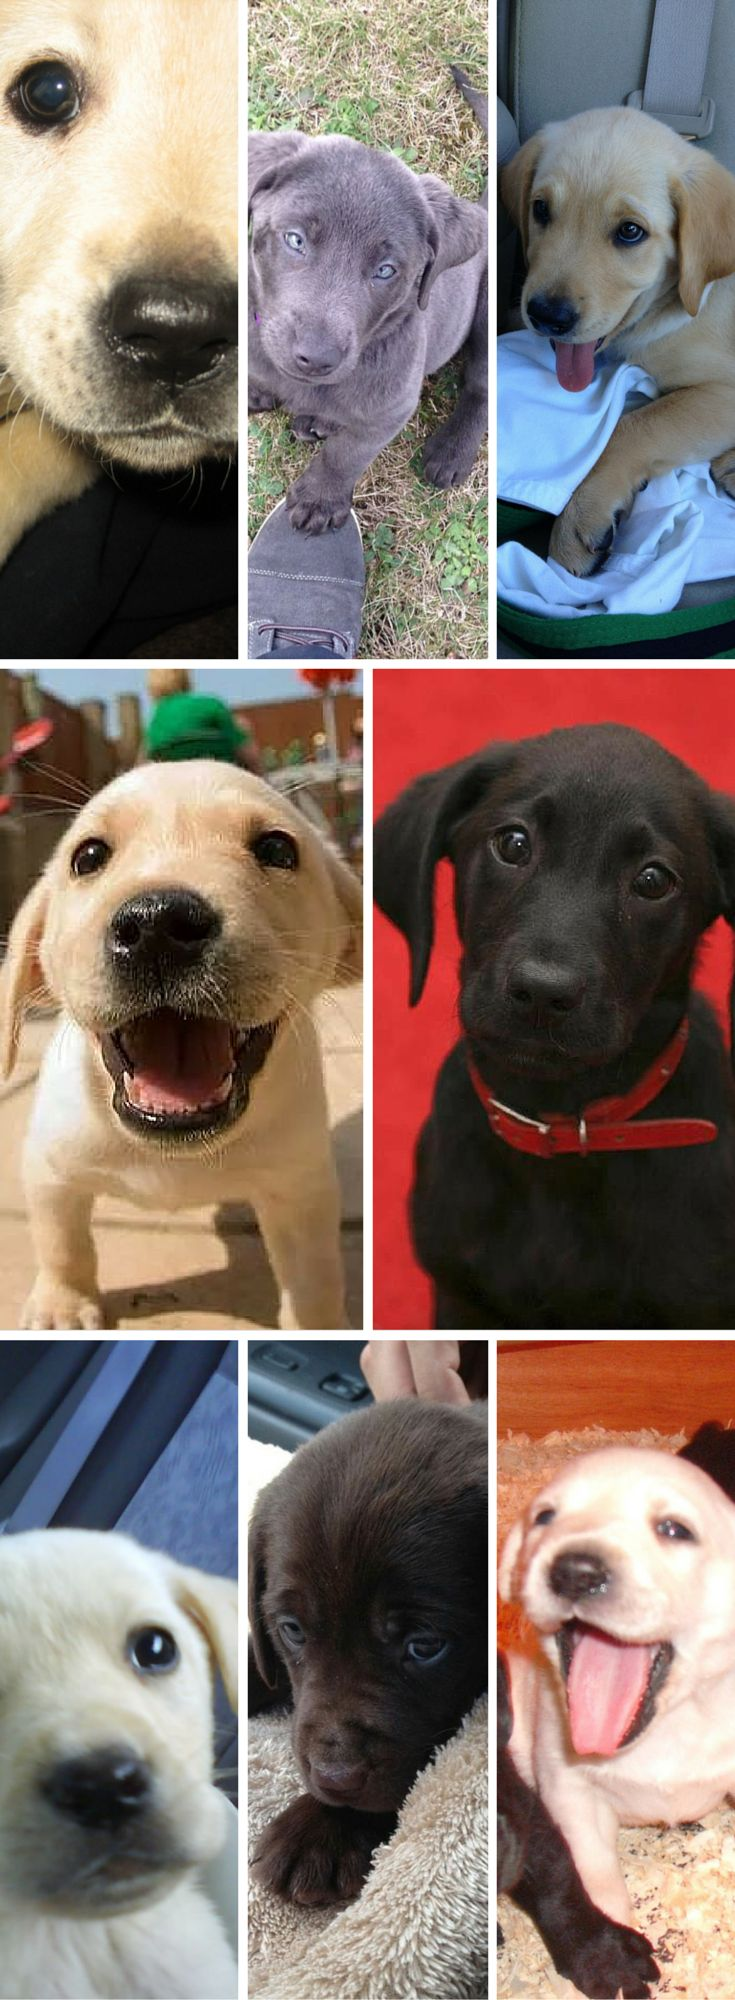 No wonder the Labrador Retriever is at the top of our most popular dog breed poll: look how adorable and cute they are! =D